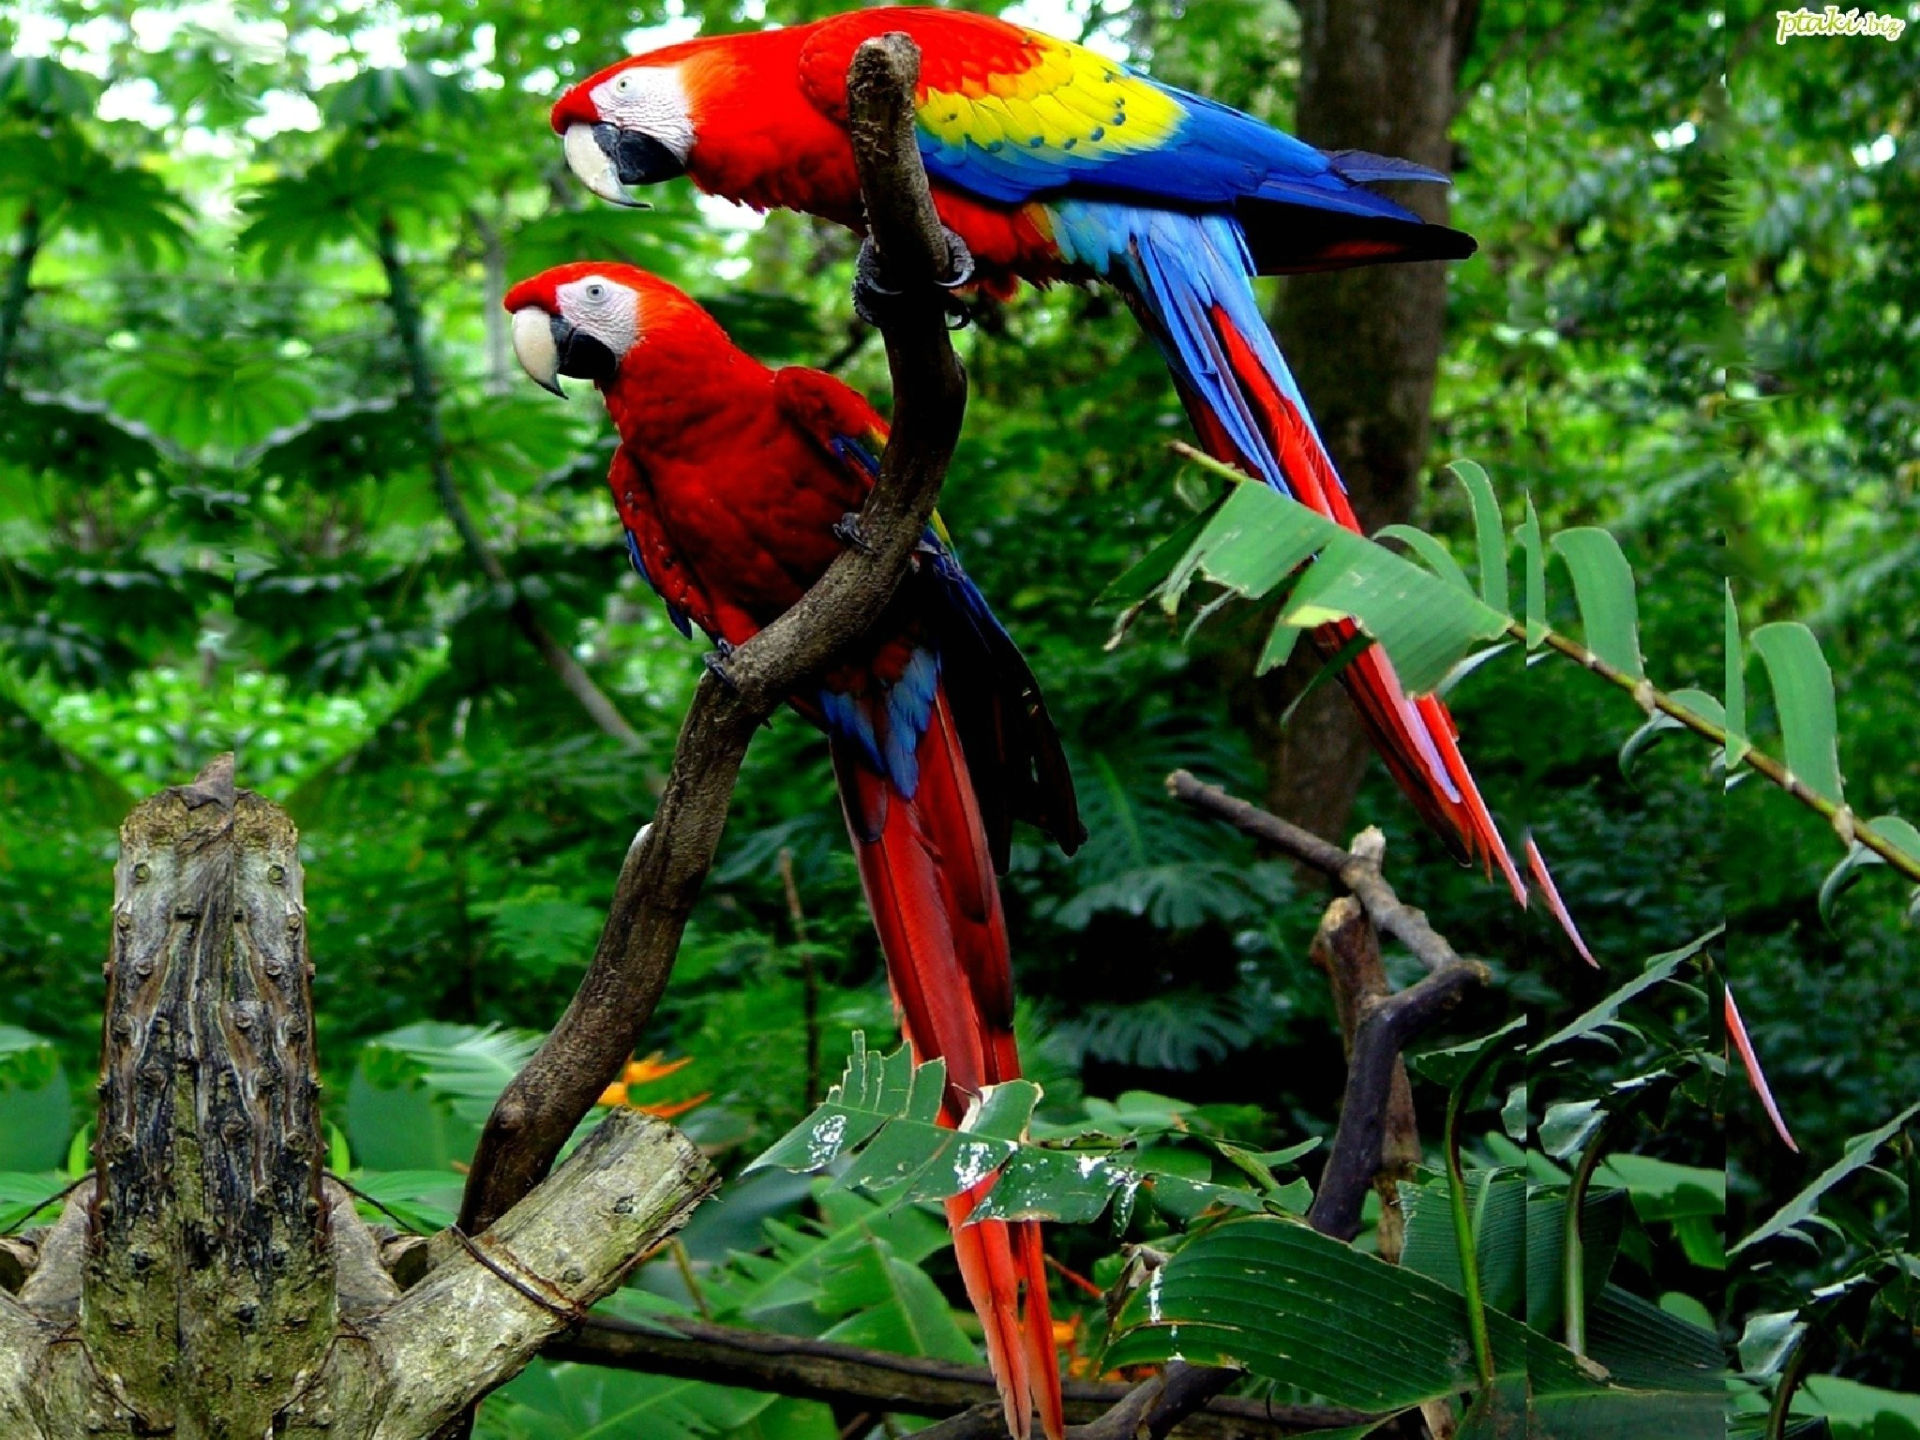 Scarlet macaw full hd wallpaper and background image - Hd pics of nature with birds ...